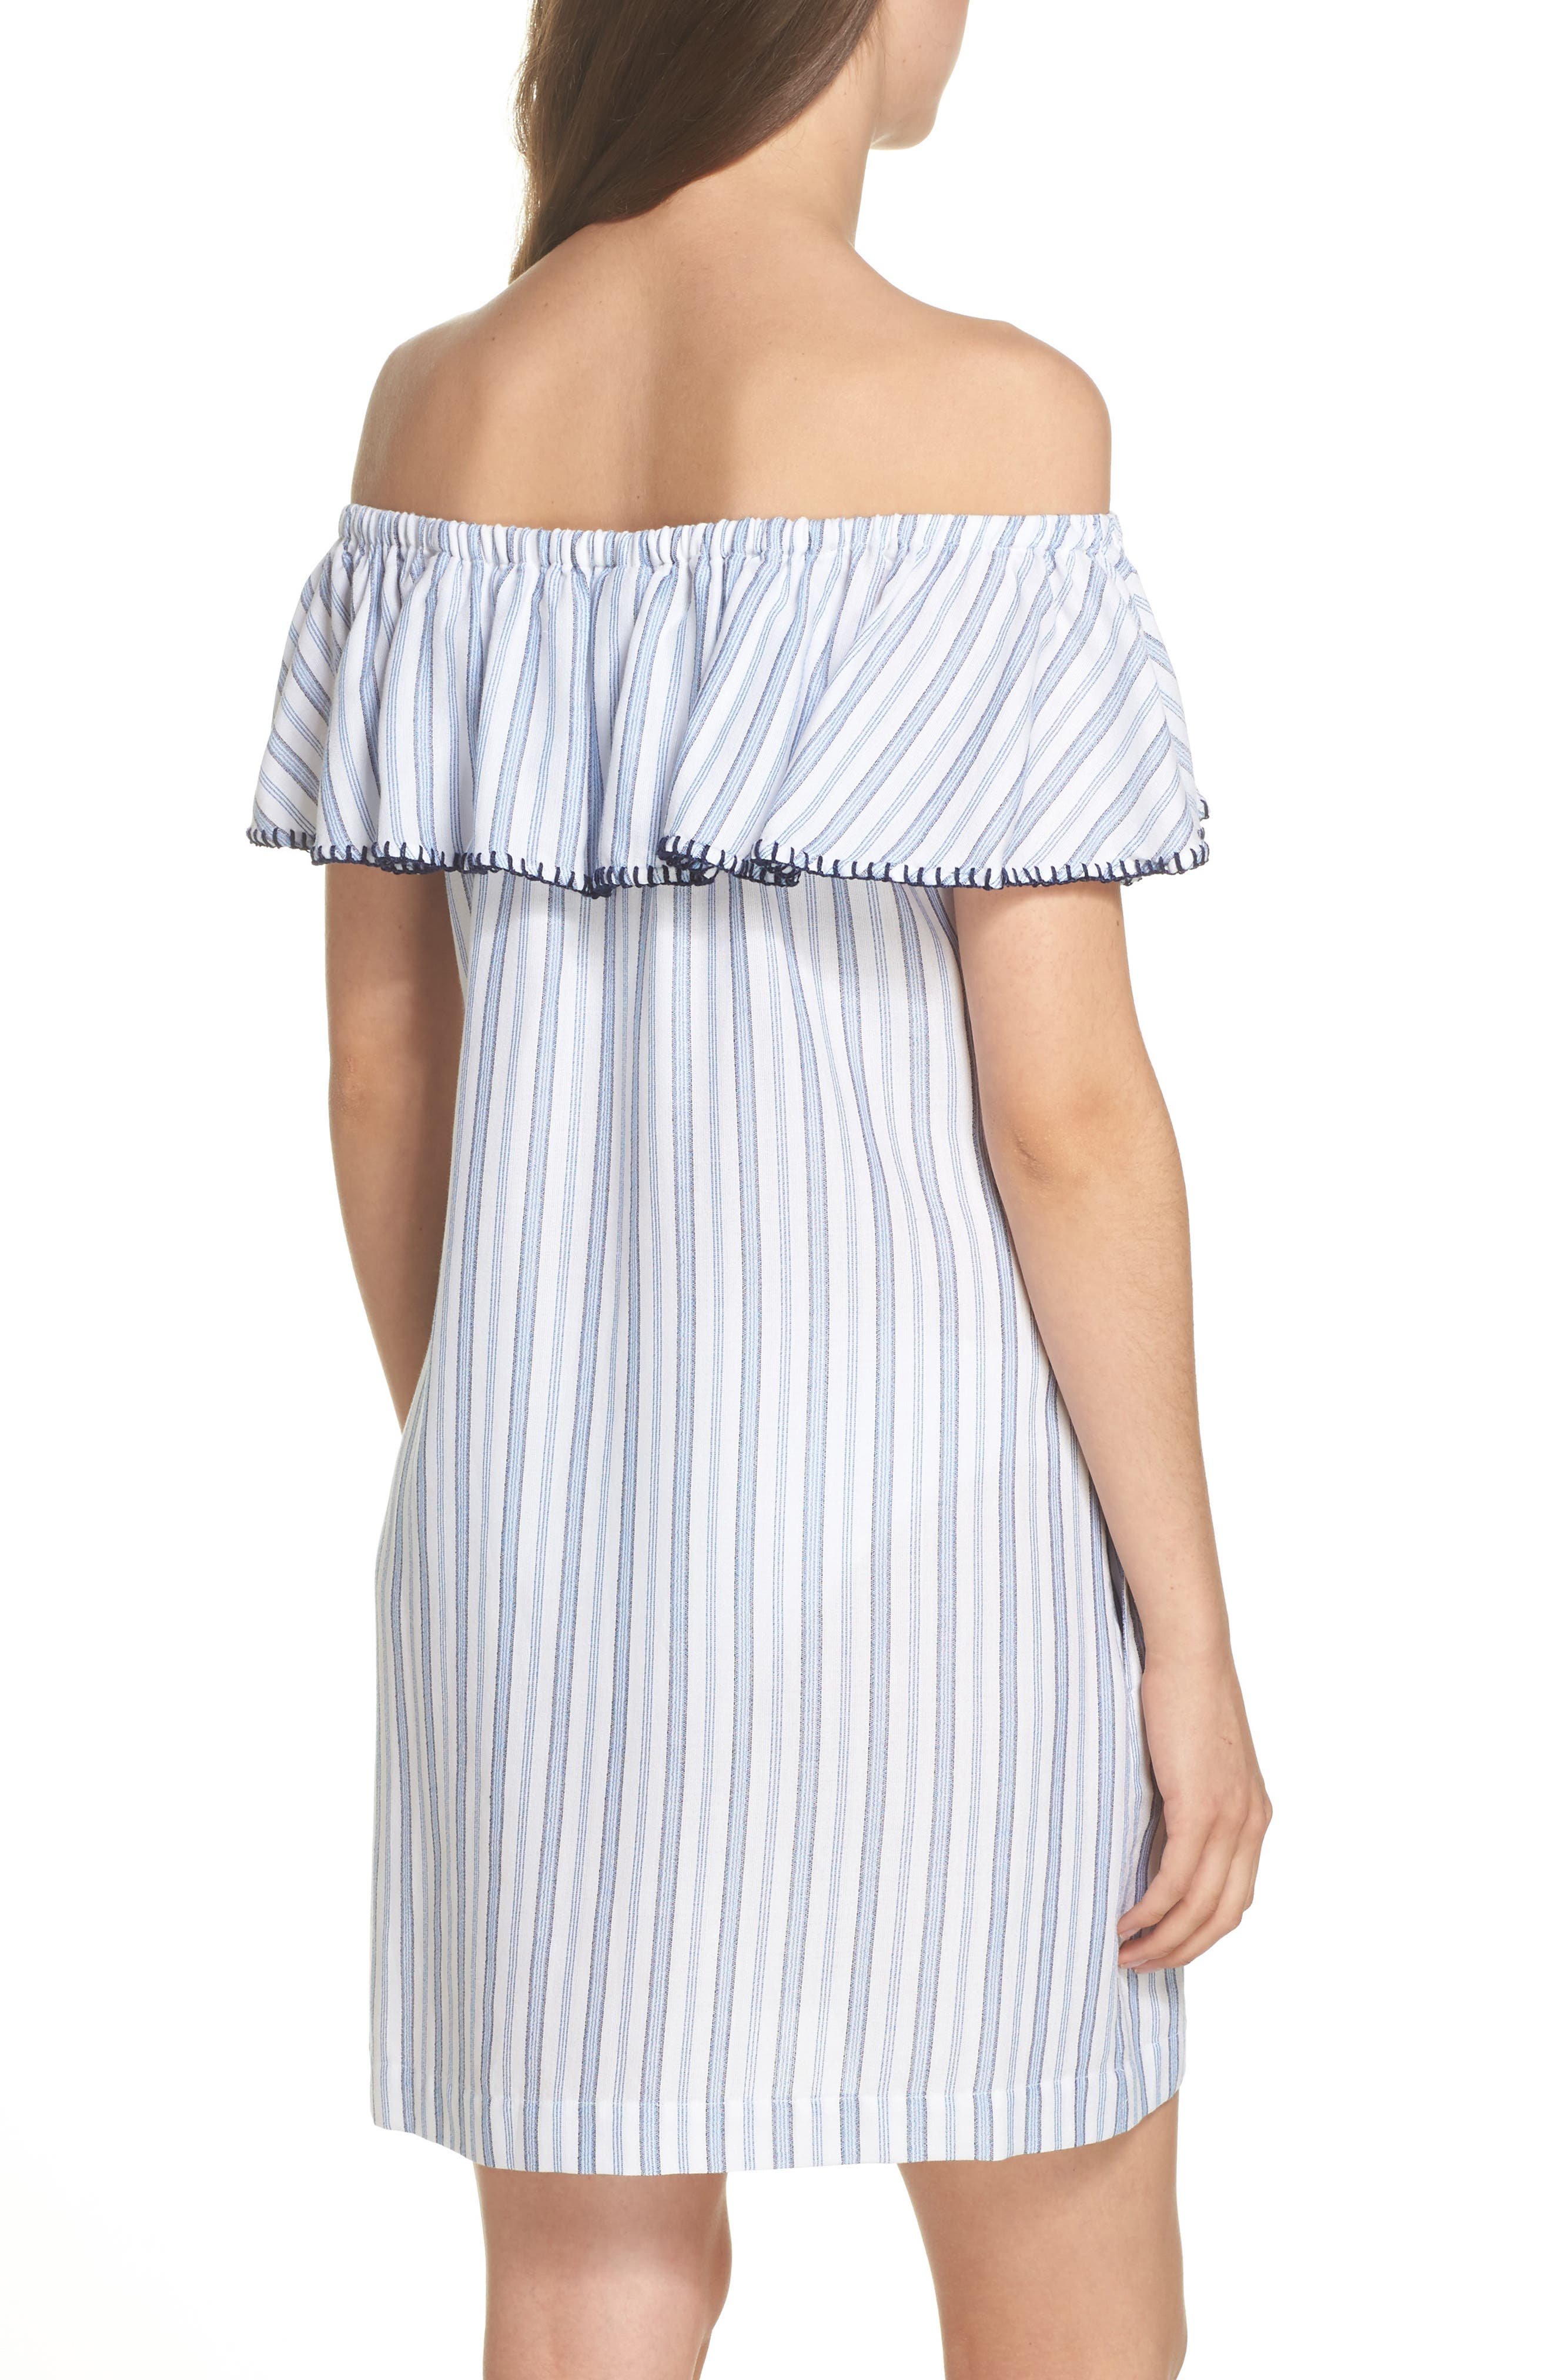 Ticking Stripe Off the Shoulder Cover-Up Dress,                             Alternate thumbnail 2, color,                             100